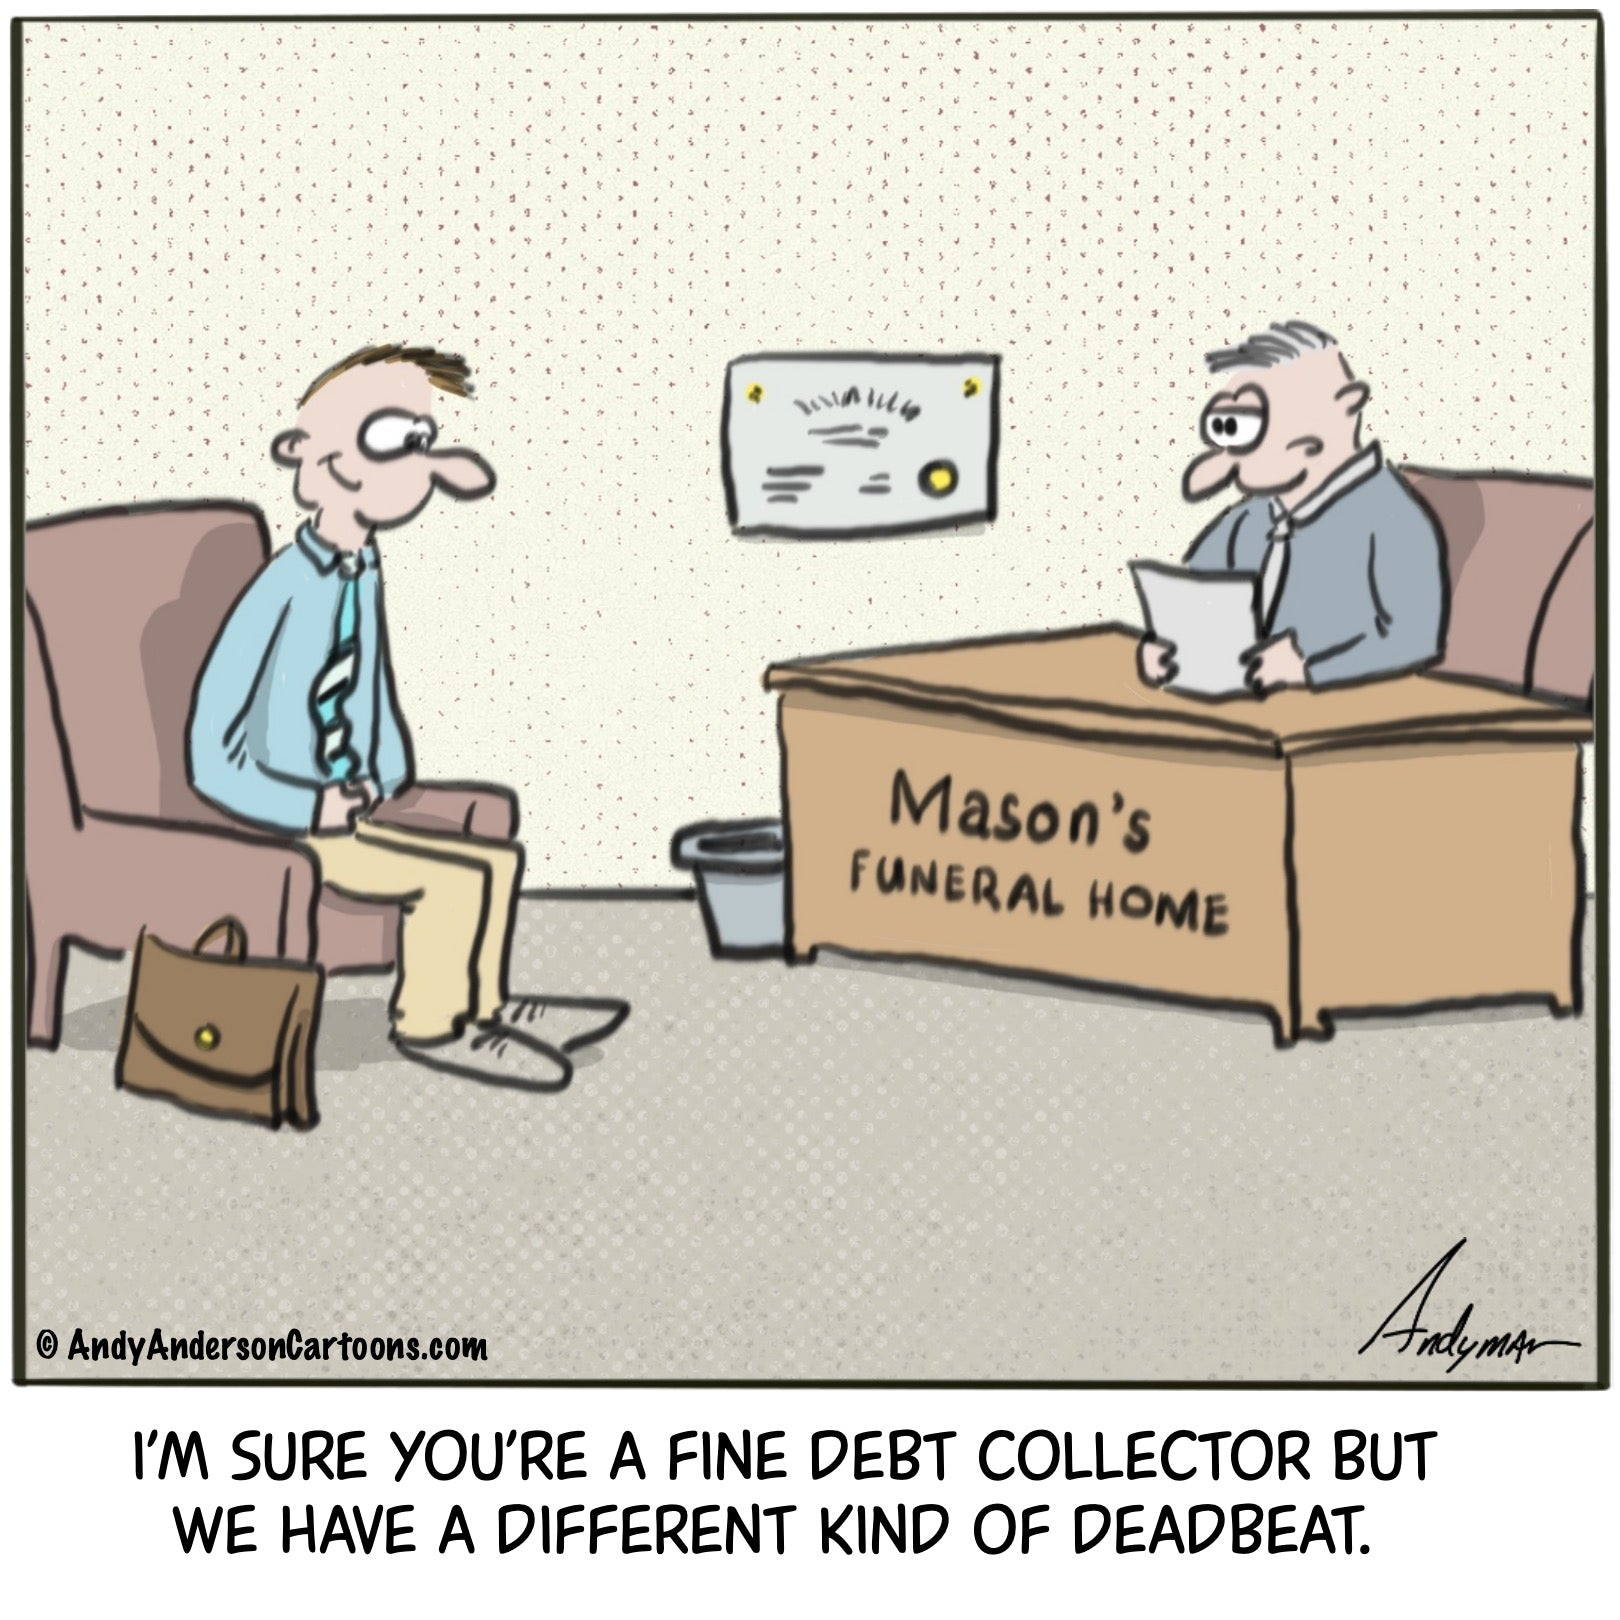 Debt collector for funeral home cartoon by Andy Anderson